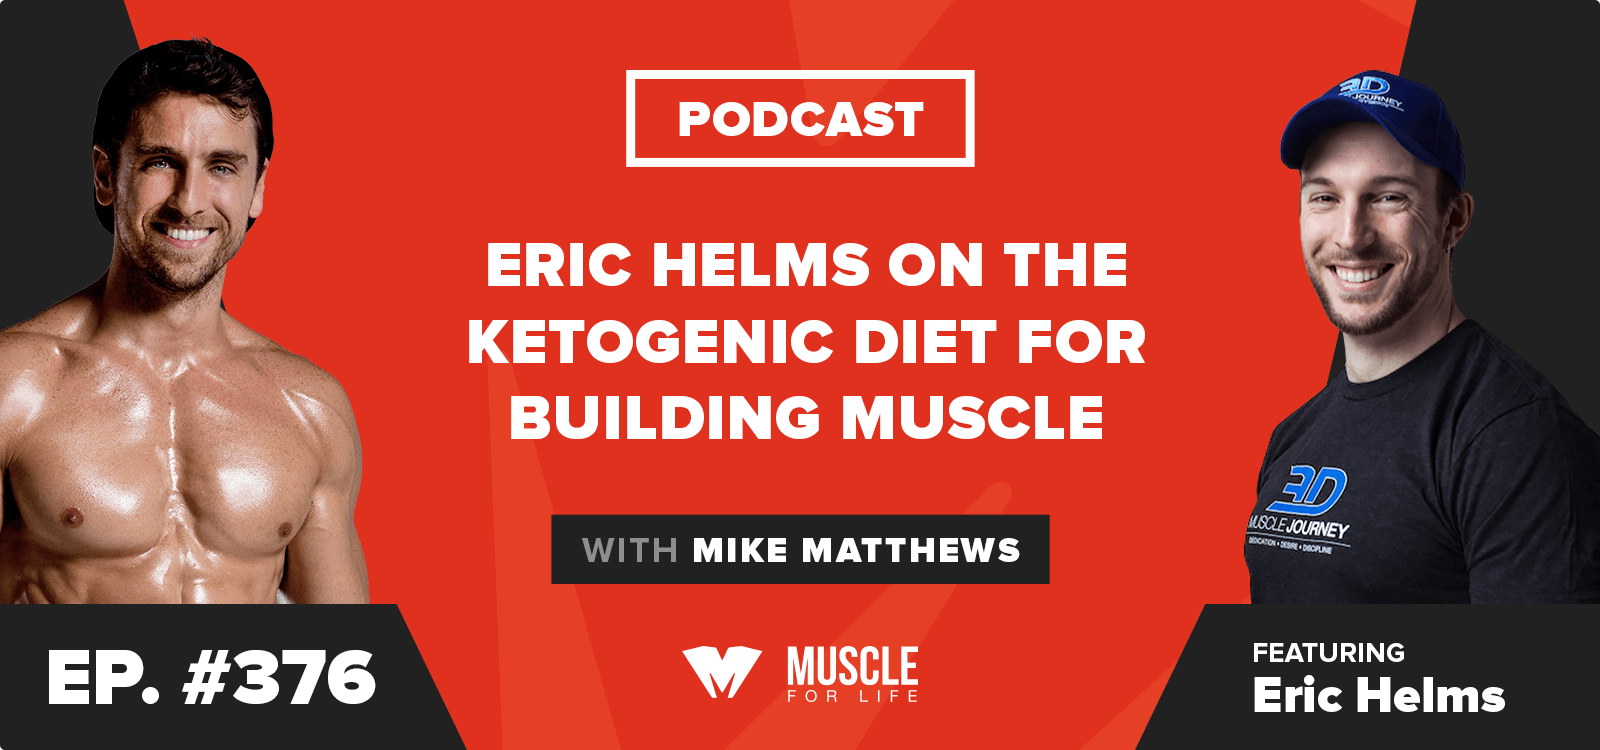 Eric Helms on the Ketogenic Diet for Building Muscle